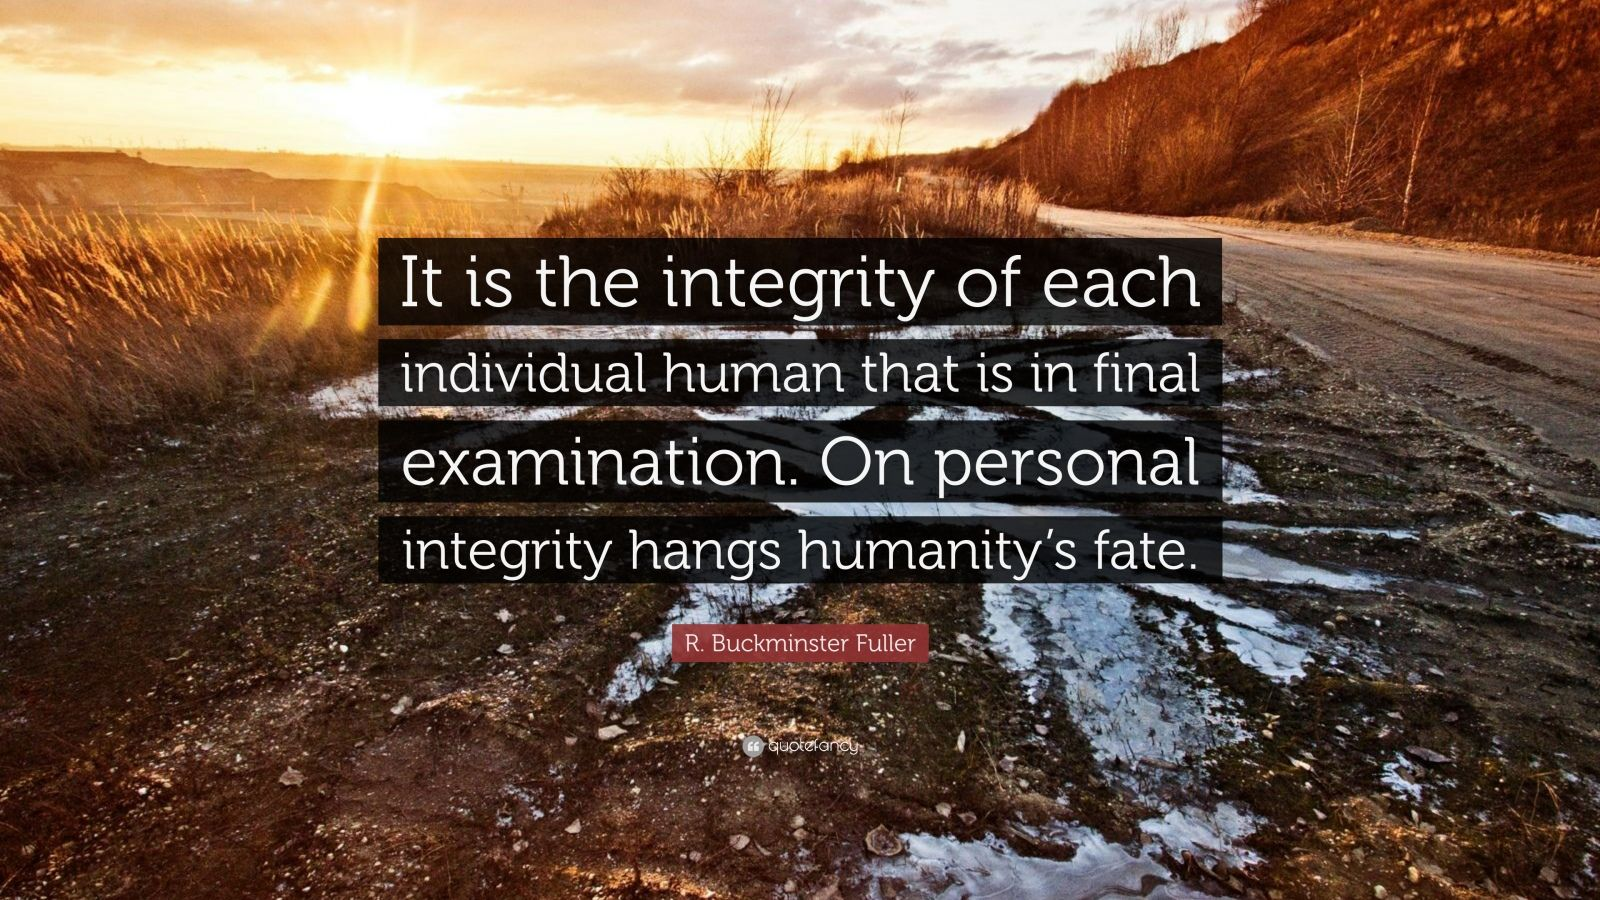 """R. Buckminster Fuller Quote: """"It is the integrity of each individual human that is in final examination. On personal integrity hangs humanity's fate."""""""